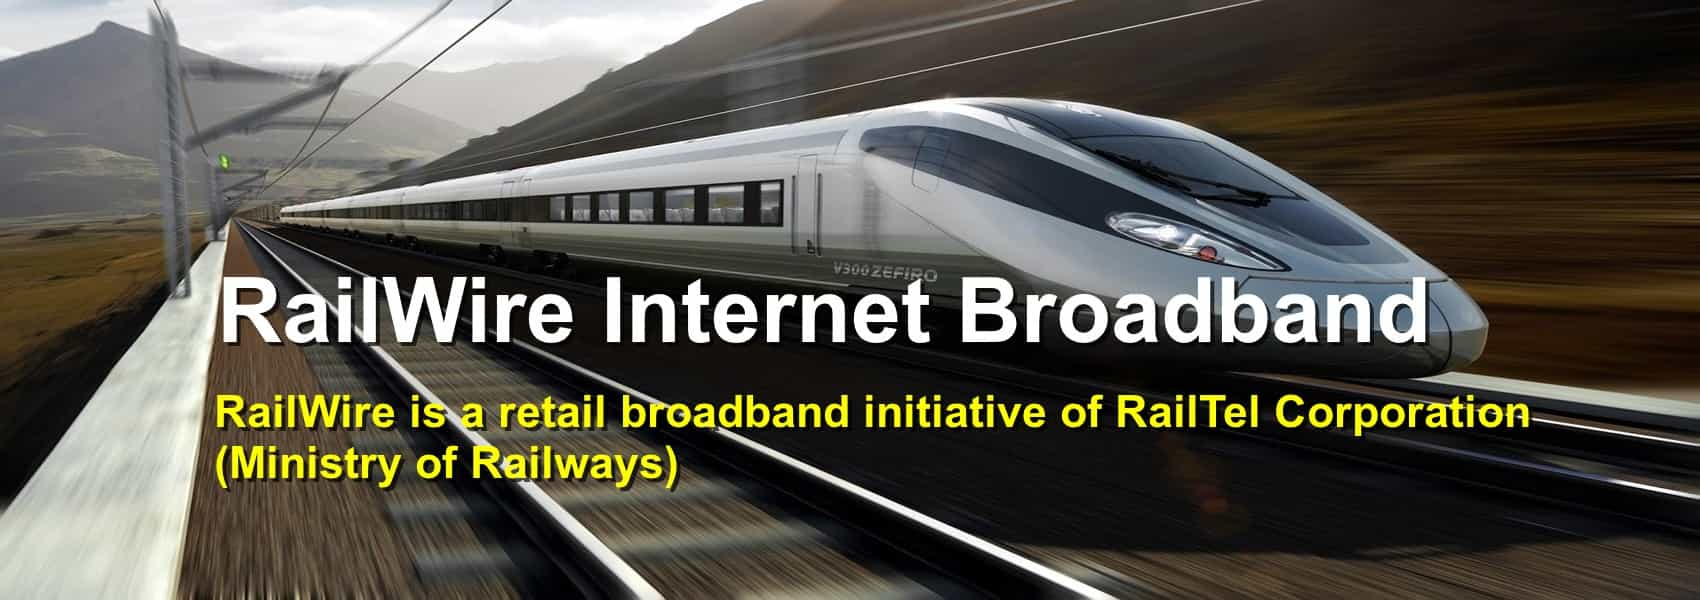 railwire broadband